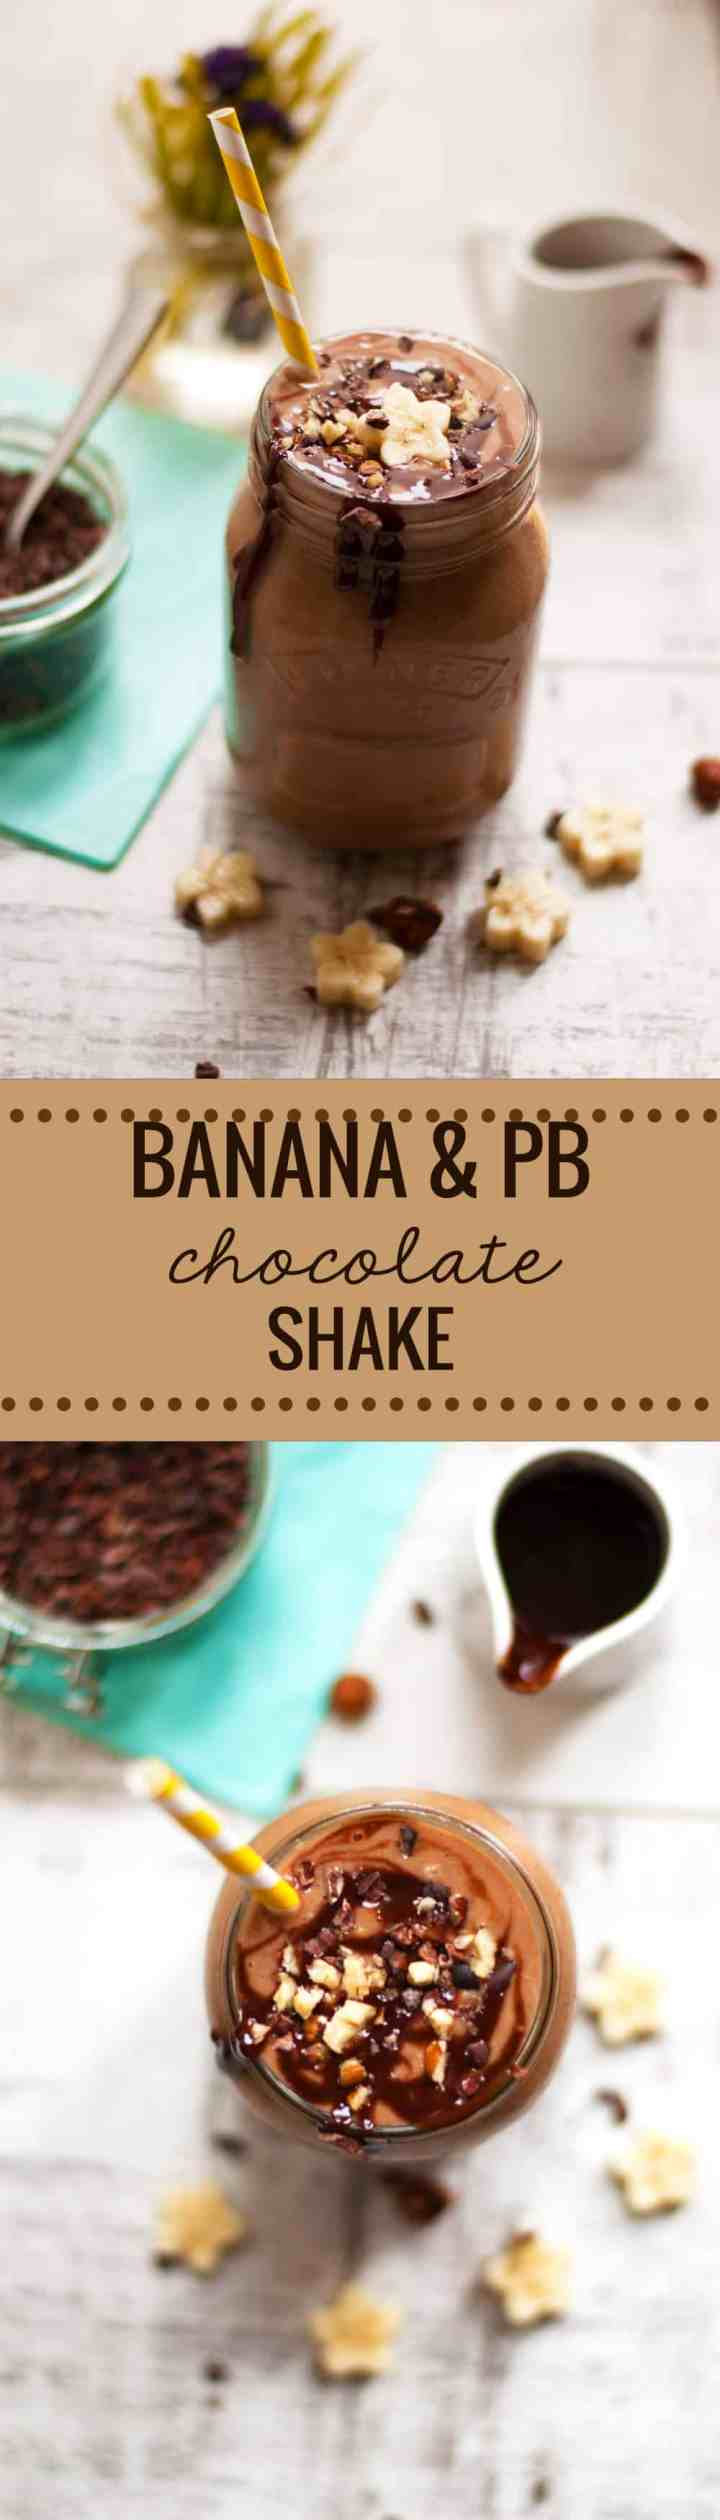 Quick recipe for delicious, creamy and thick chocolate shake with bananas and peanut butter. Made with only 5 ingredients and ready in 5 minutes, you will love it! via @ annabanana.co